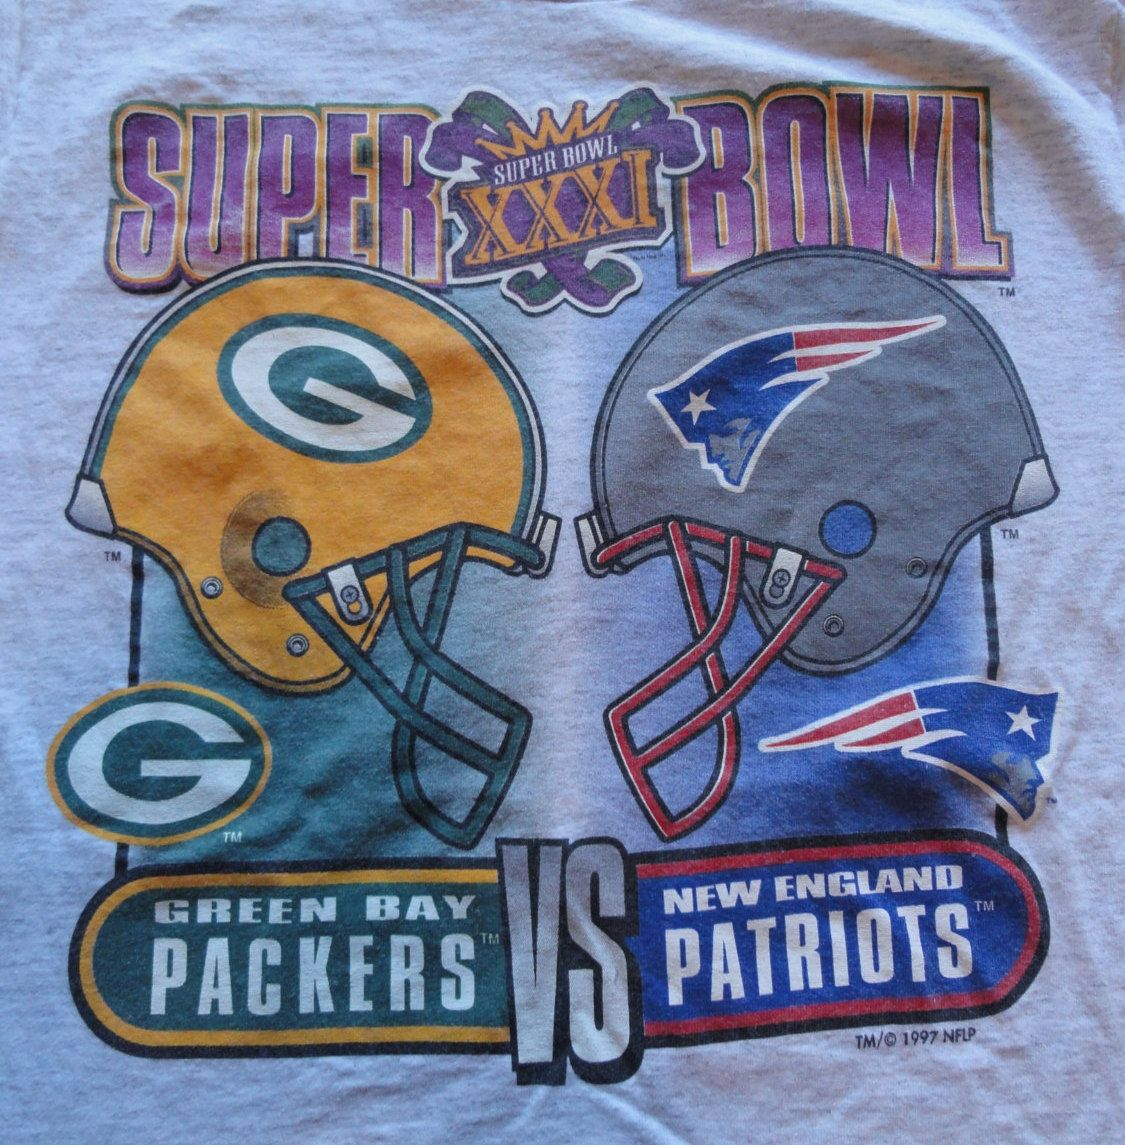 fd0c2b746 vintage Super Bowl XXXI t-shirt   Green Bay Packers vs New England Patriots    M by PolycoVintage on Etsy